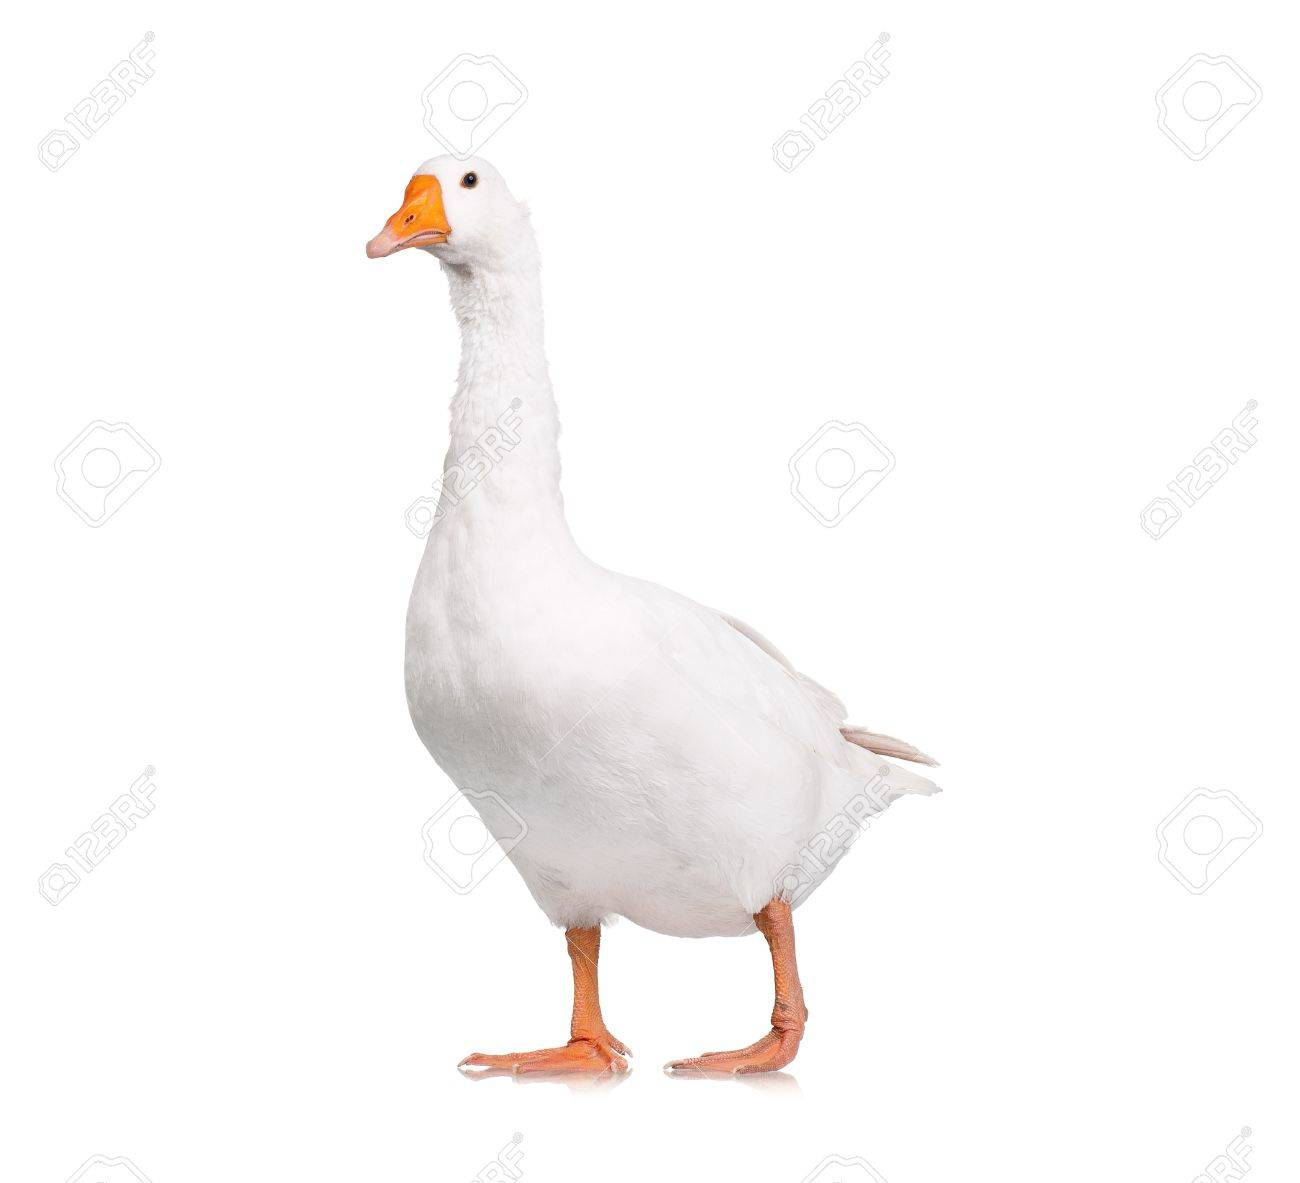 White domestic goose isolated on white background Stock Photo - 15814297